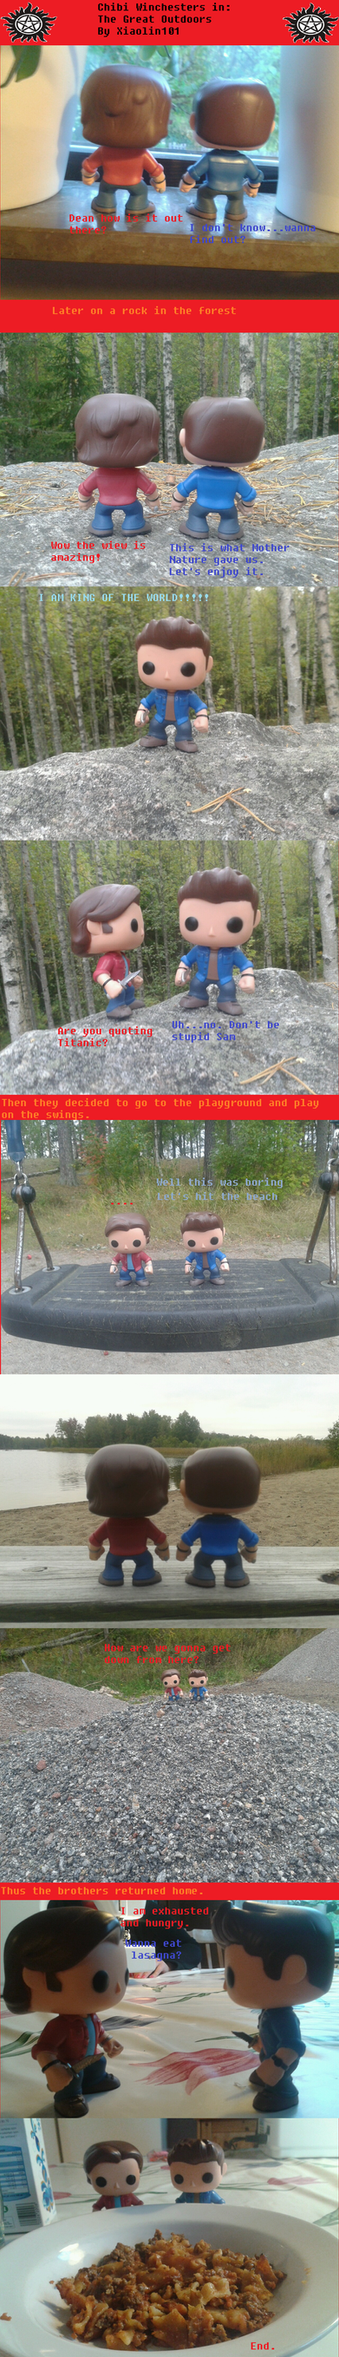 Chibi Winchester Adventures: The Great Outdoors by Xiaolin101